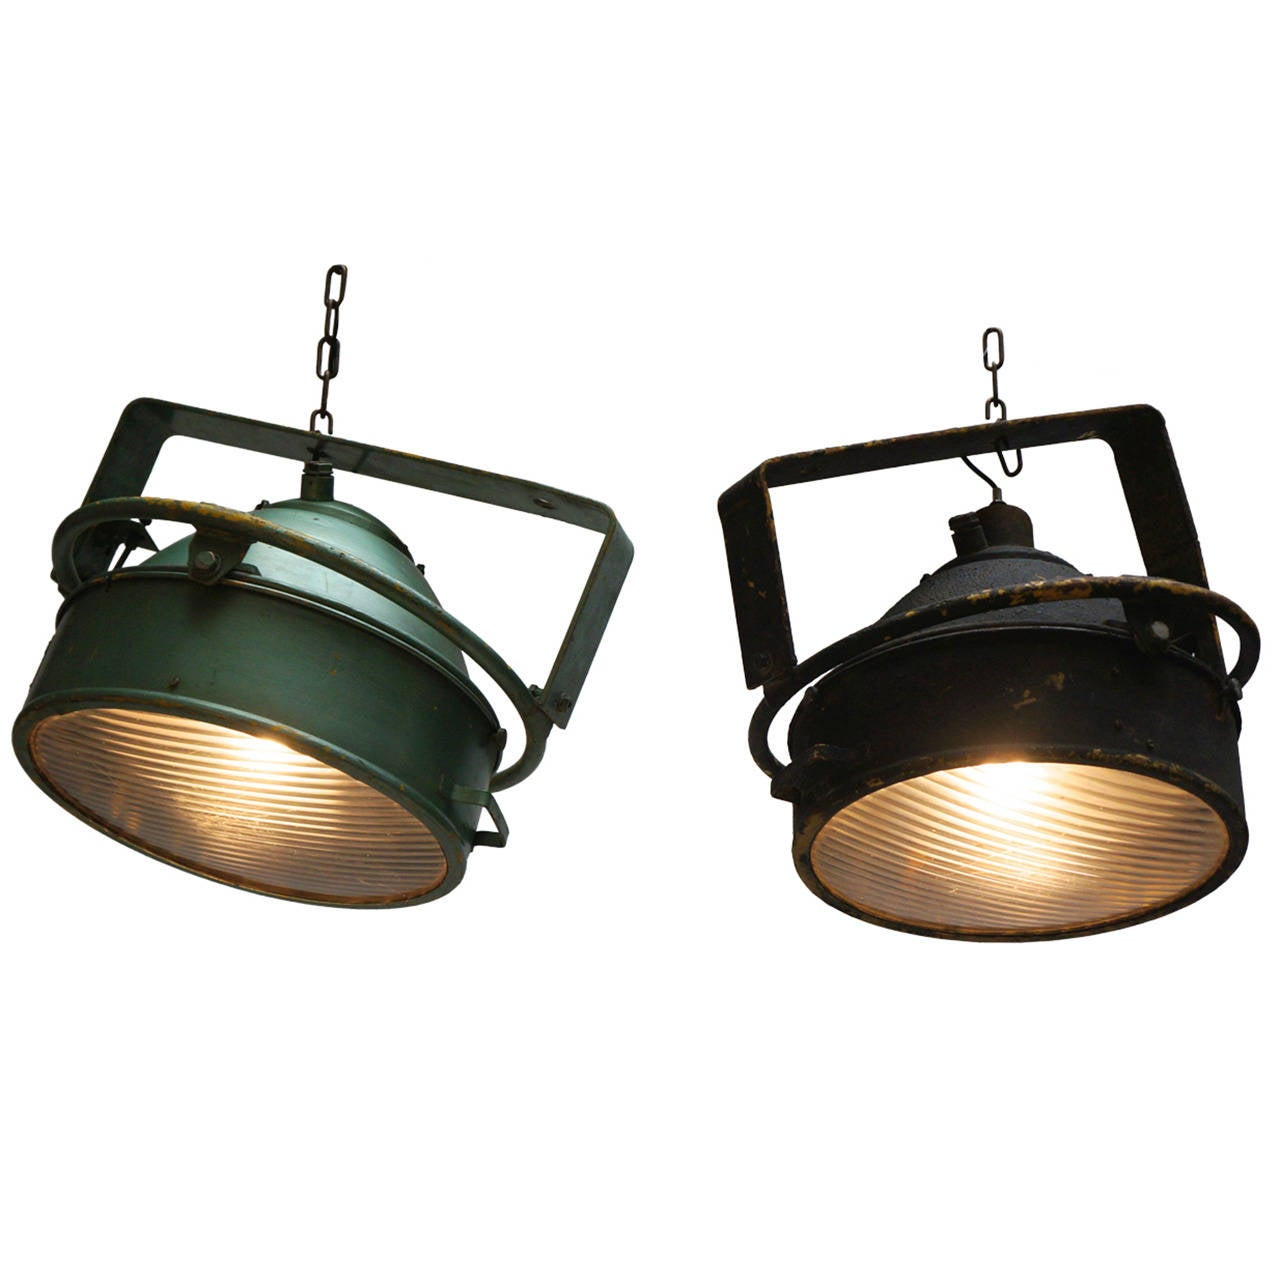 Pair of Industrial Pendant Lights